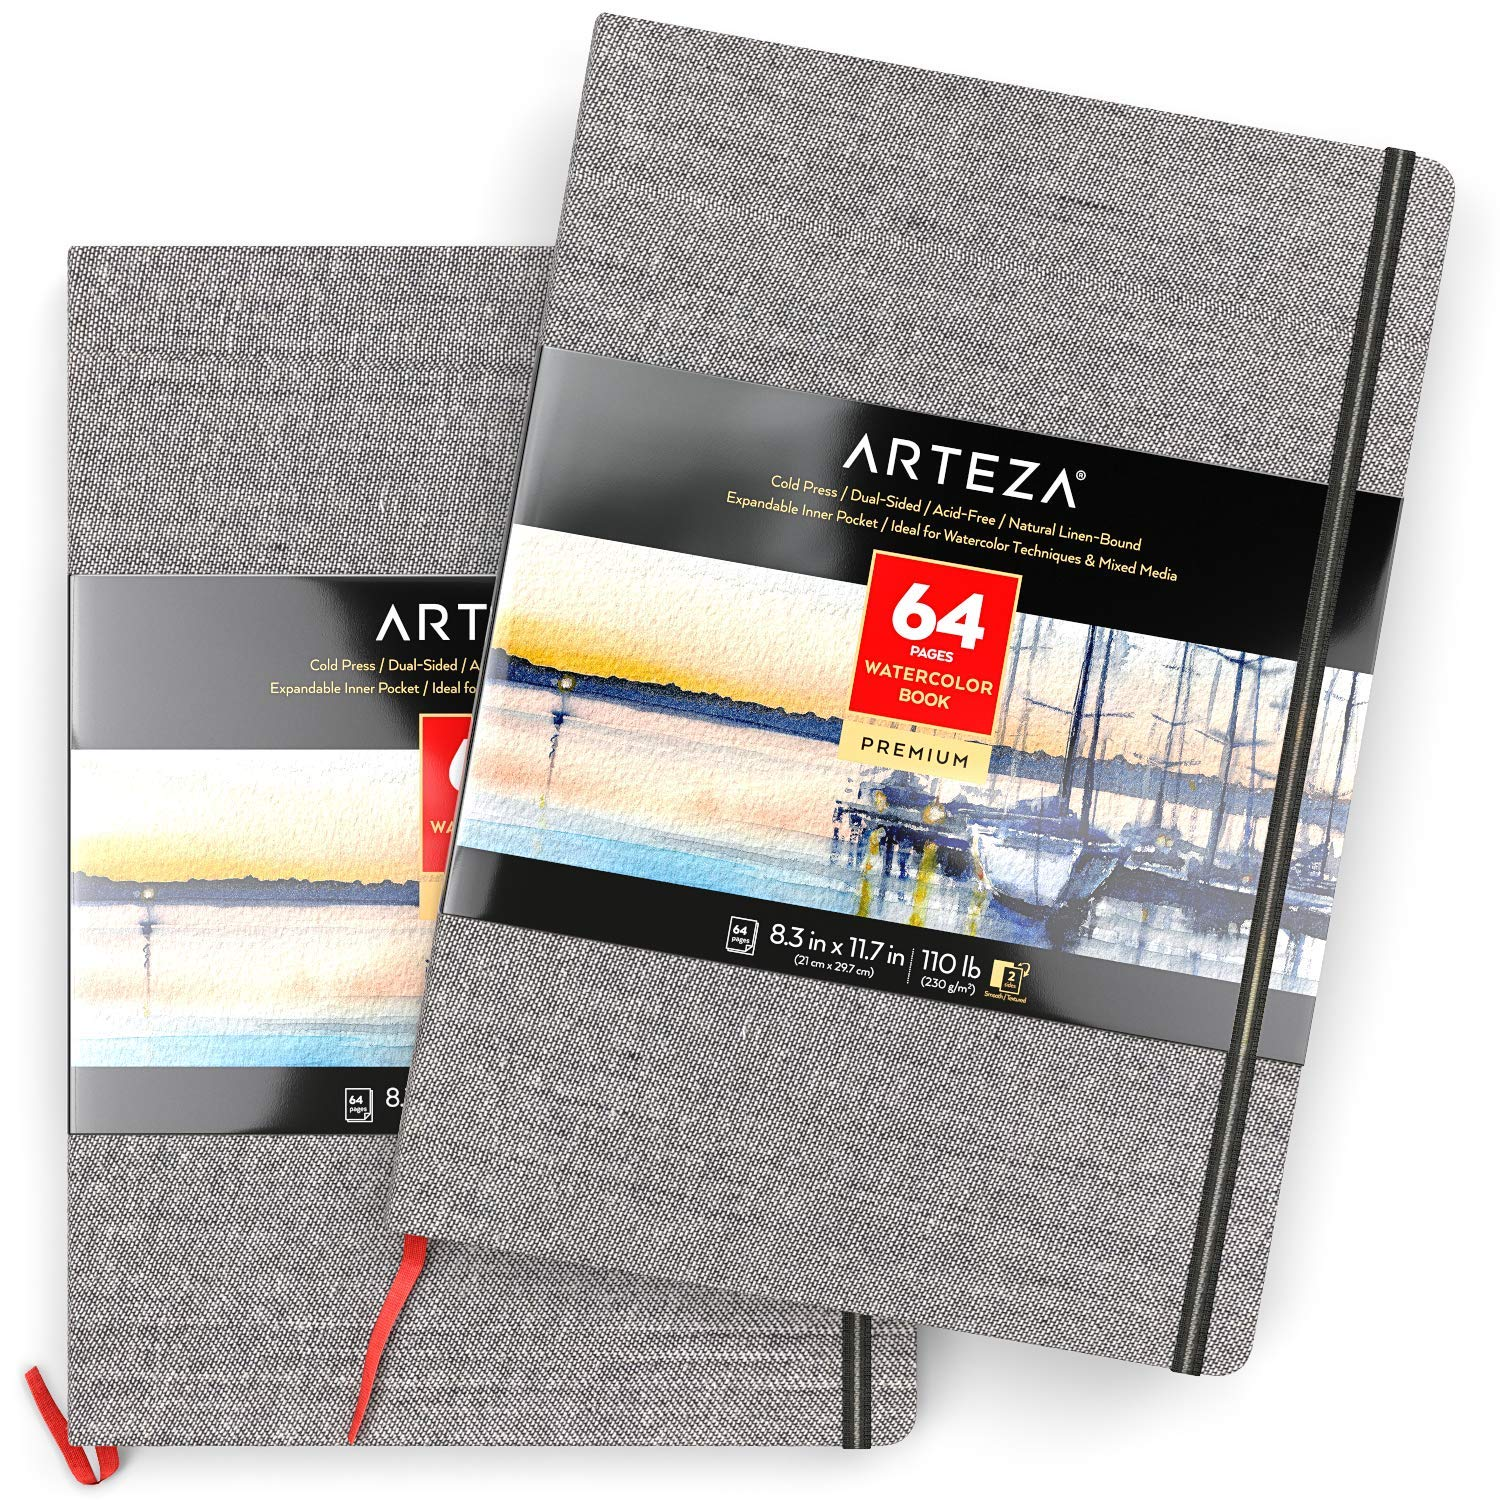 ARTEZA 8.3x11.7'' Watercolor Book, Pack of 2 Watercolor Sketchbooks, 64 Sheets per Pad, 110lb/230gsm, Linen Bound with Bookmark Ribbon and Elastic Strap, for Watercolor Techniques and Mixed Media